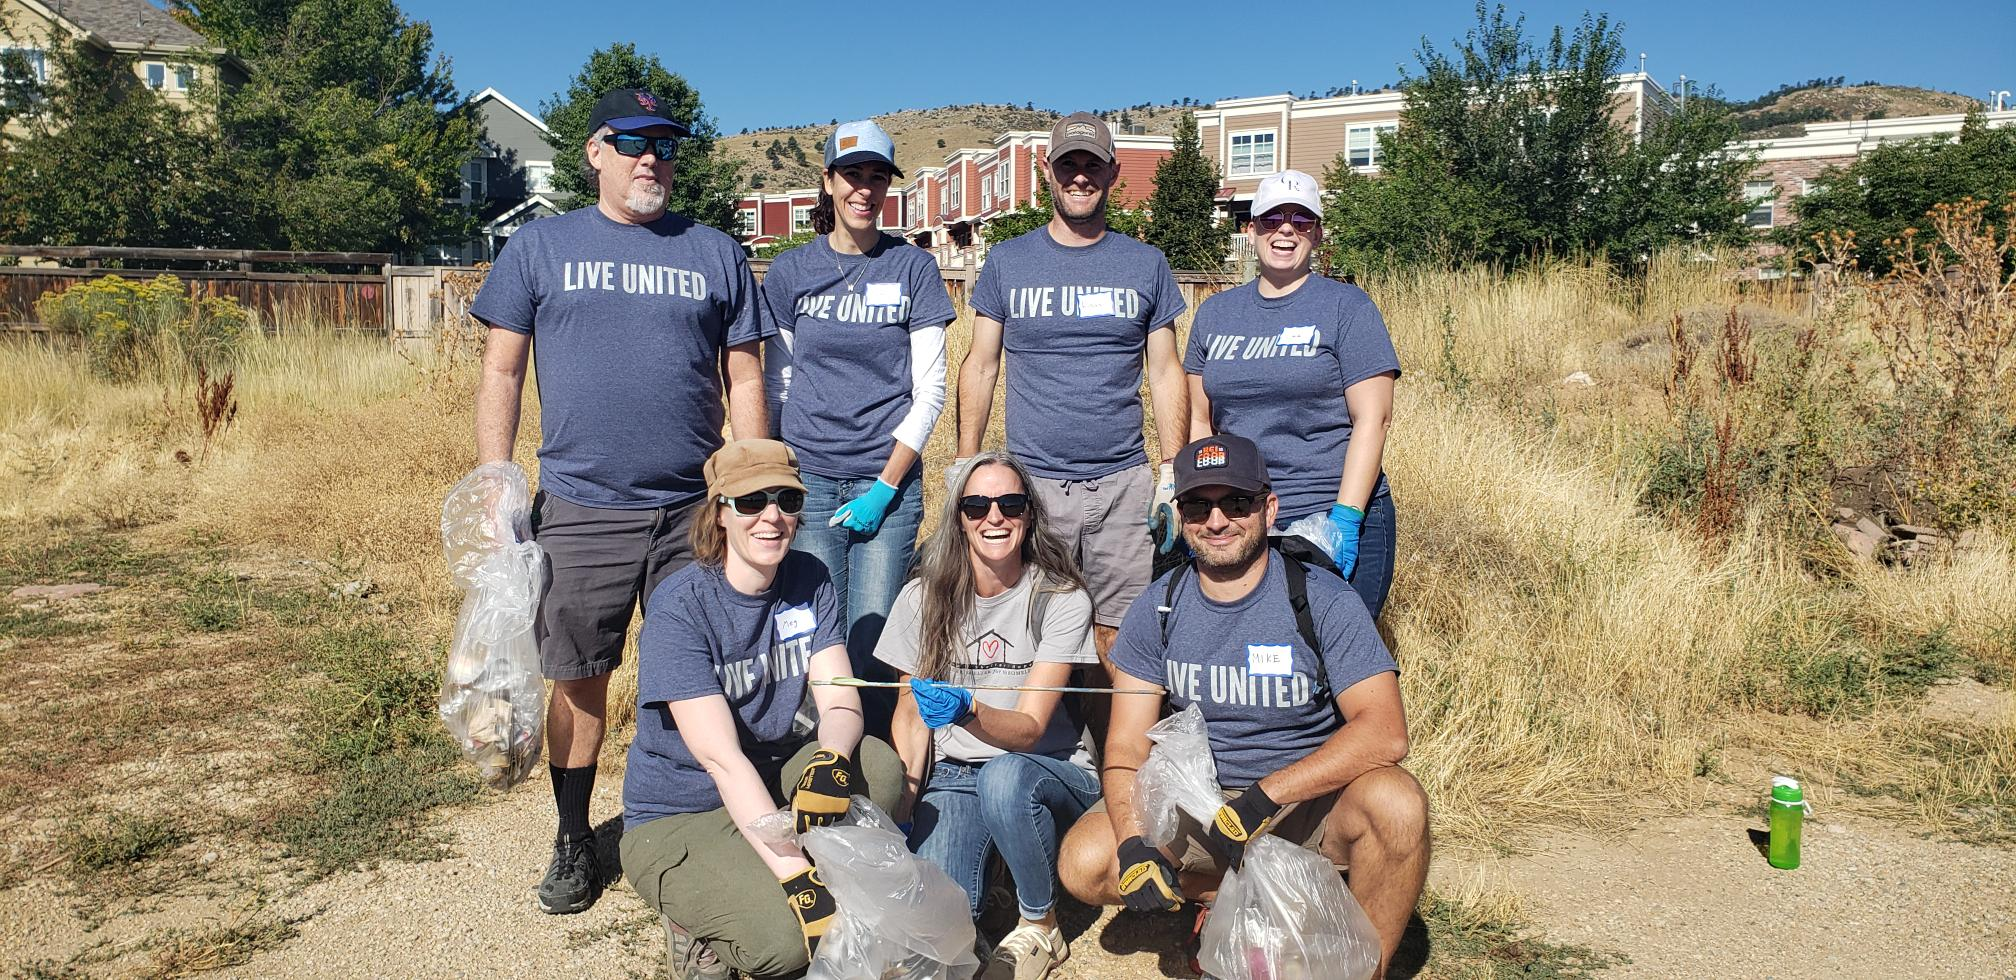 Day of Caring volunteer event with Foothill United Way - Mile High United Way